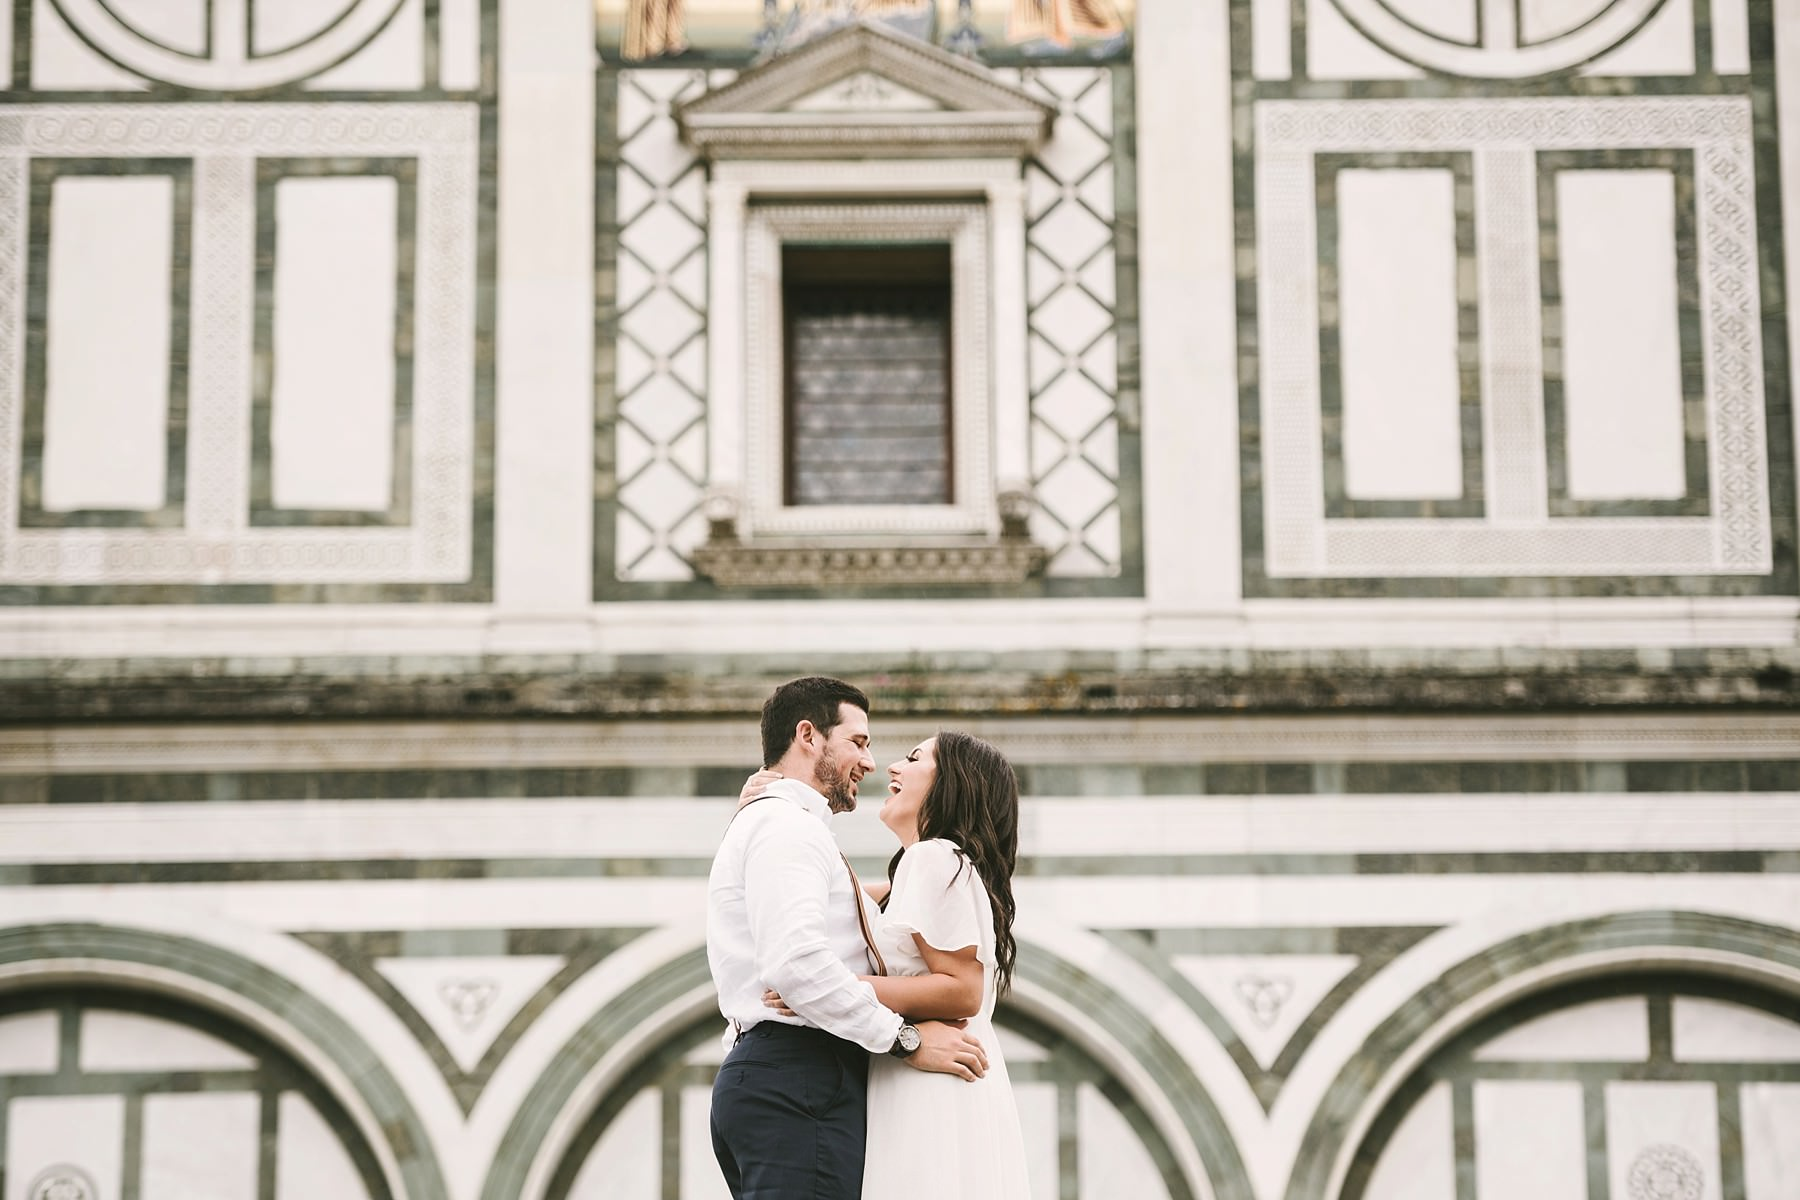 Elegant and romantic couple portrait photo shoot all around Florence the cradle of Renaissance